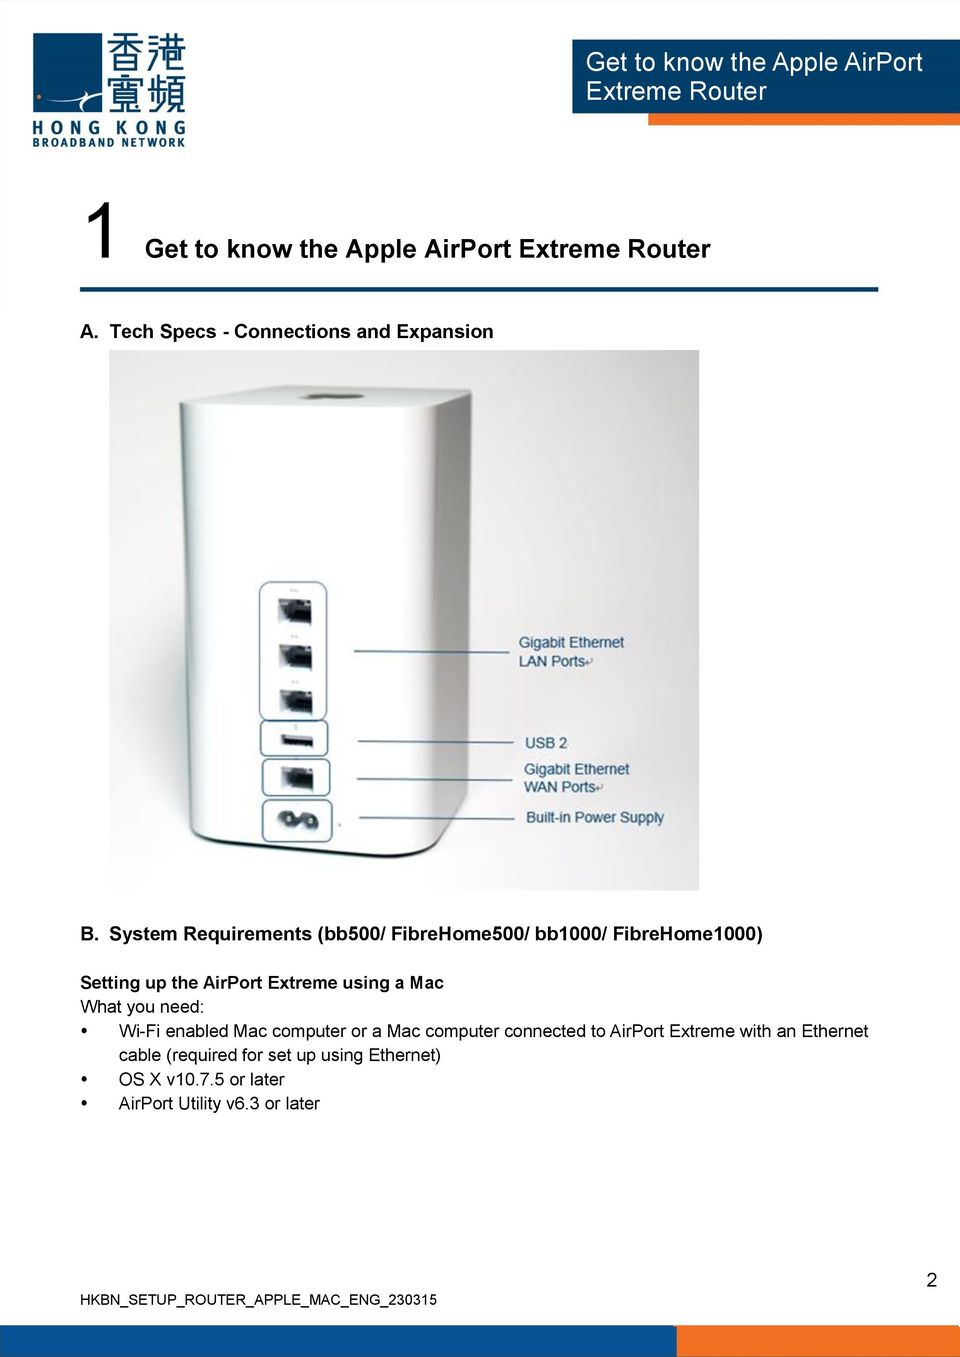 System Requirements (bb500/ FibreHome500/ bb1000/ FibreHome1000) Setting up the AirPort Extreme using a Mac What